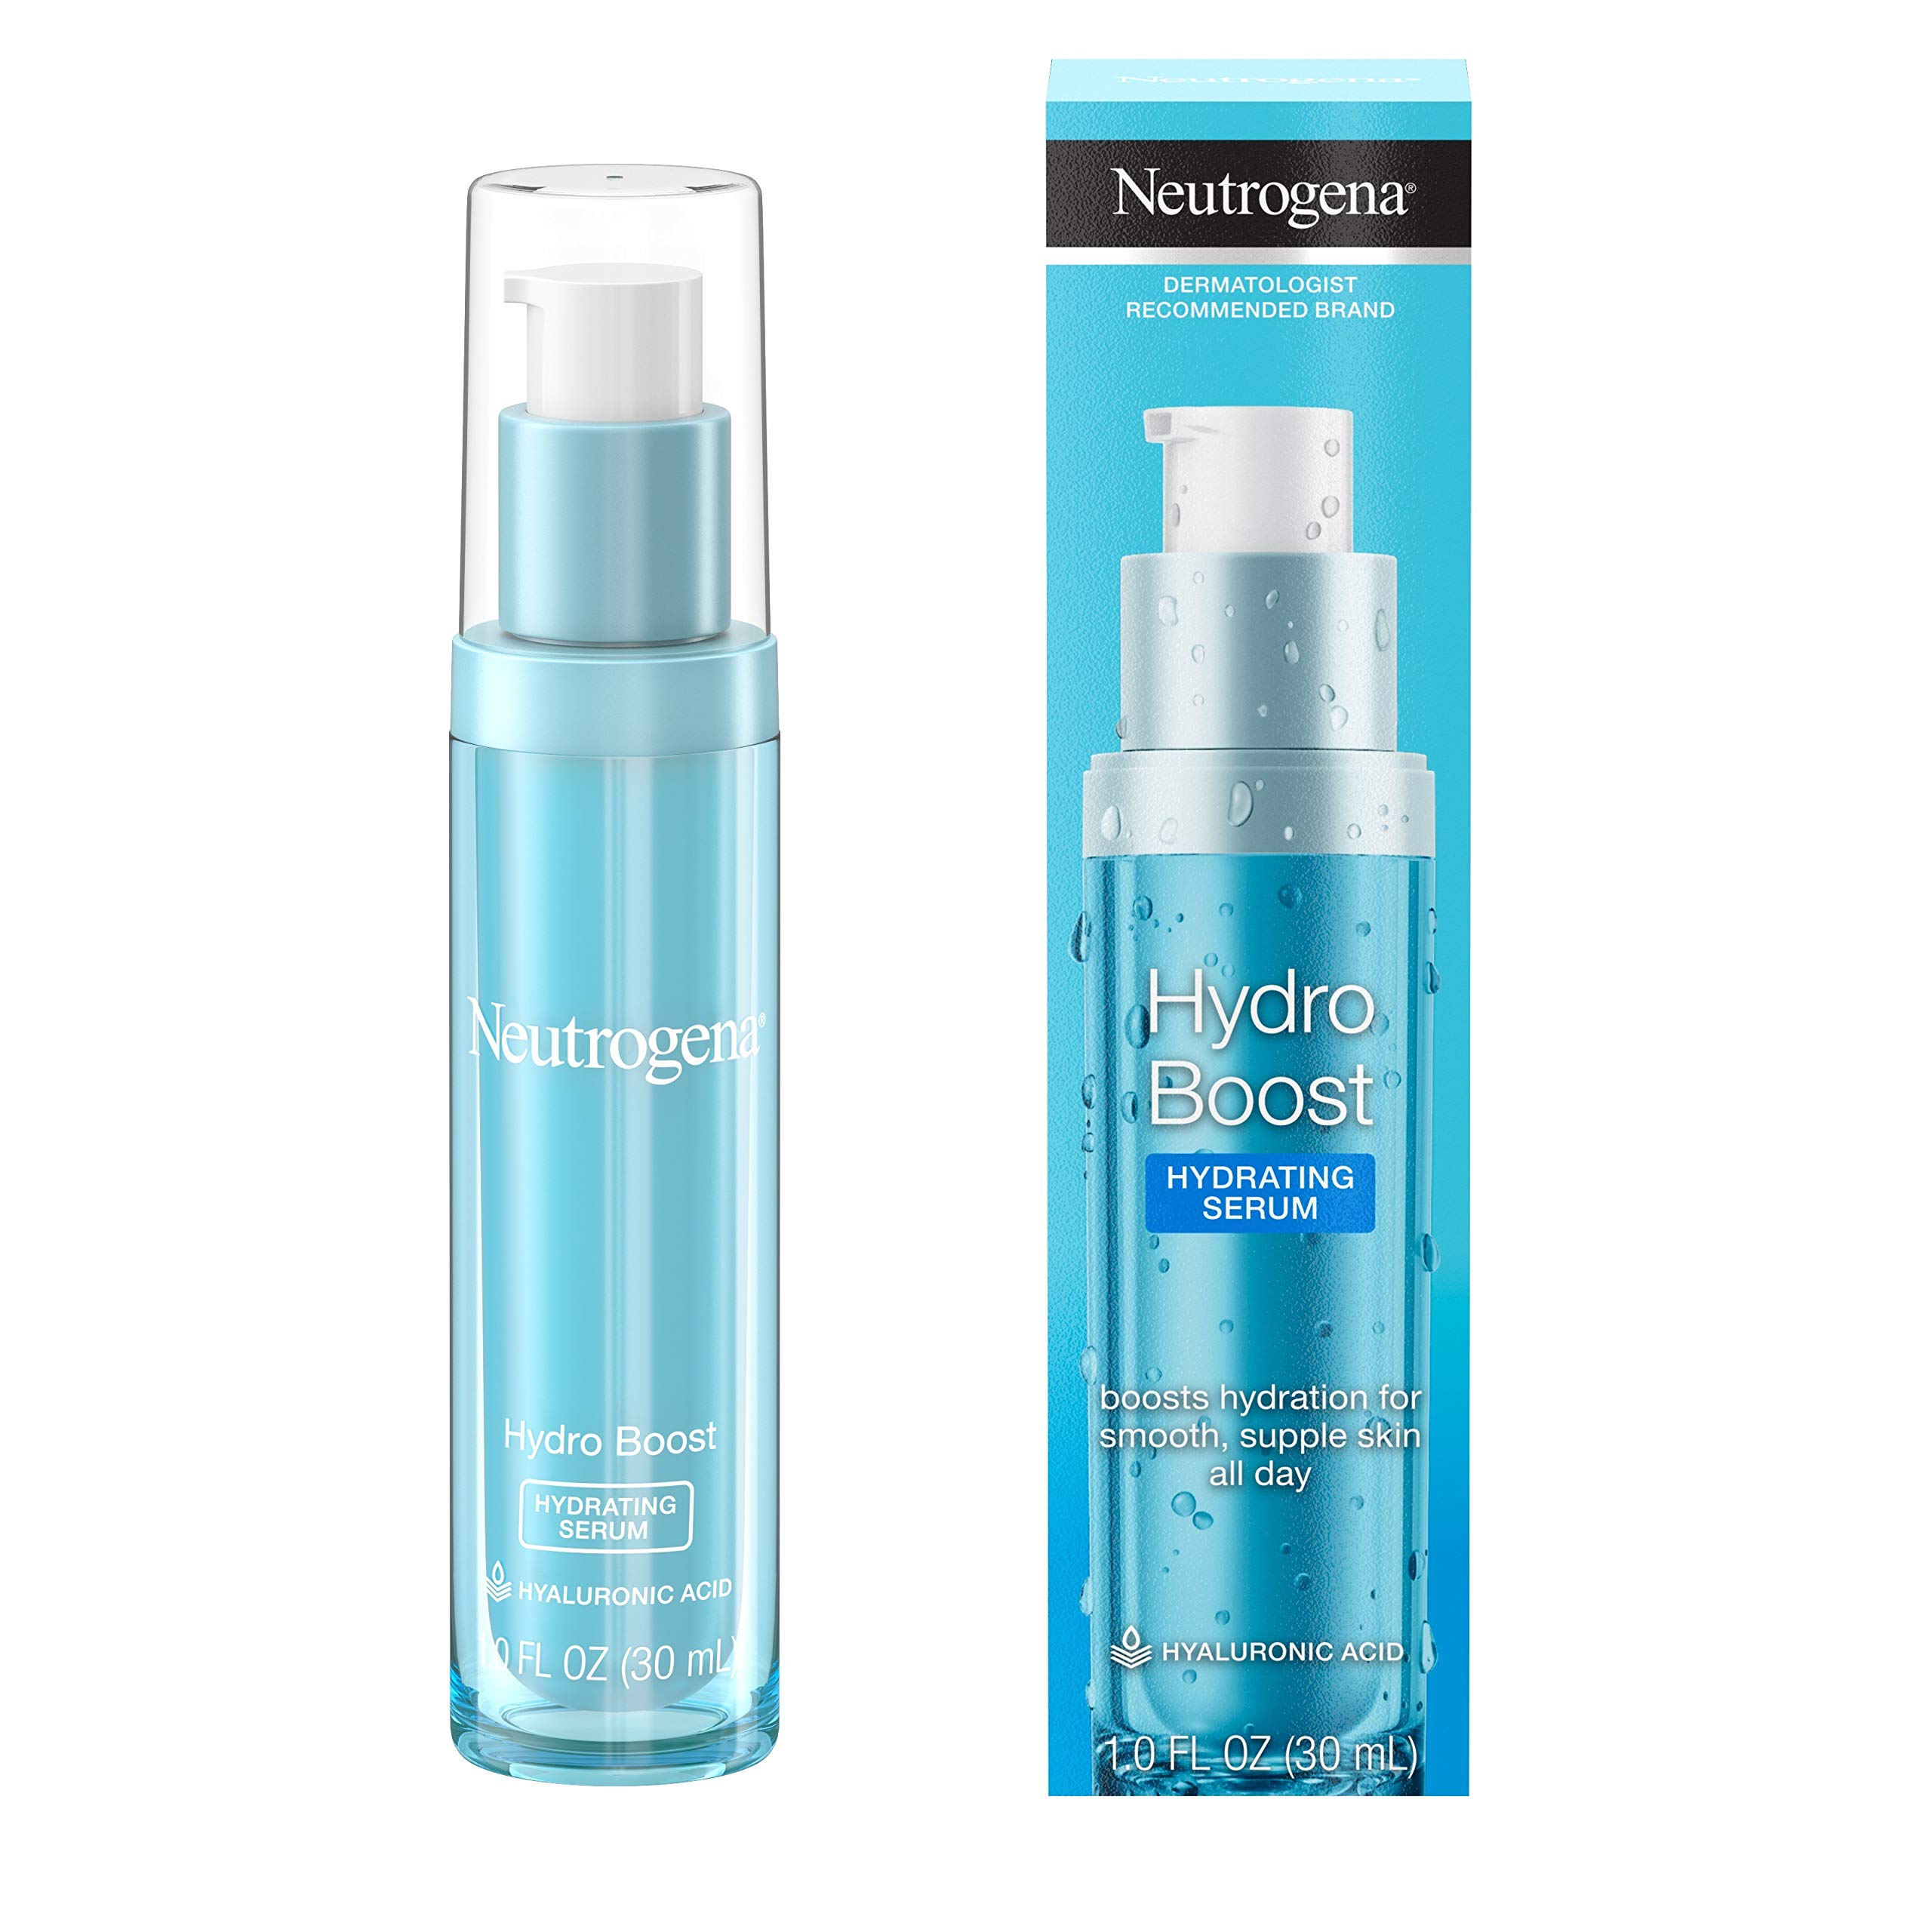 Neutrogena Hydro Boost Hydrating Hyaluronic Acid Serum Oil Free And Non Comedogenic Face Serum Formula For Glowing Complexion Oil Free Non Comedogenic 1 Fl Ounce Buy Online In Dominica At Dominica Desertcart Com Productid 34335399